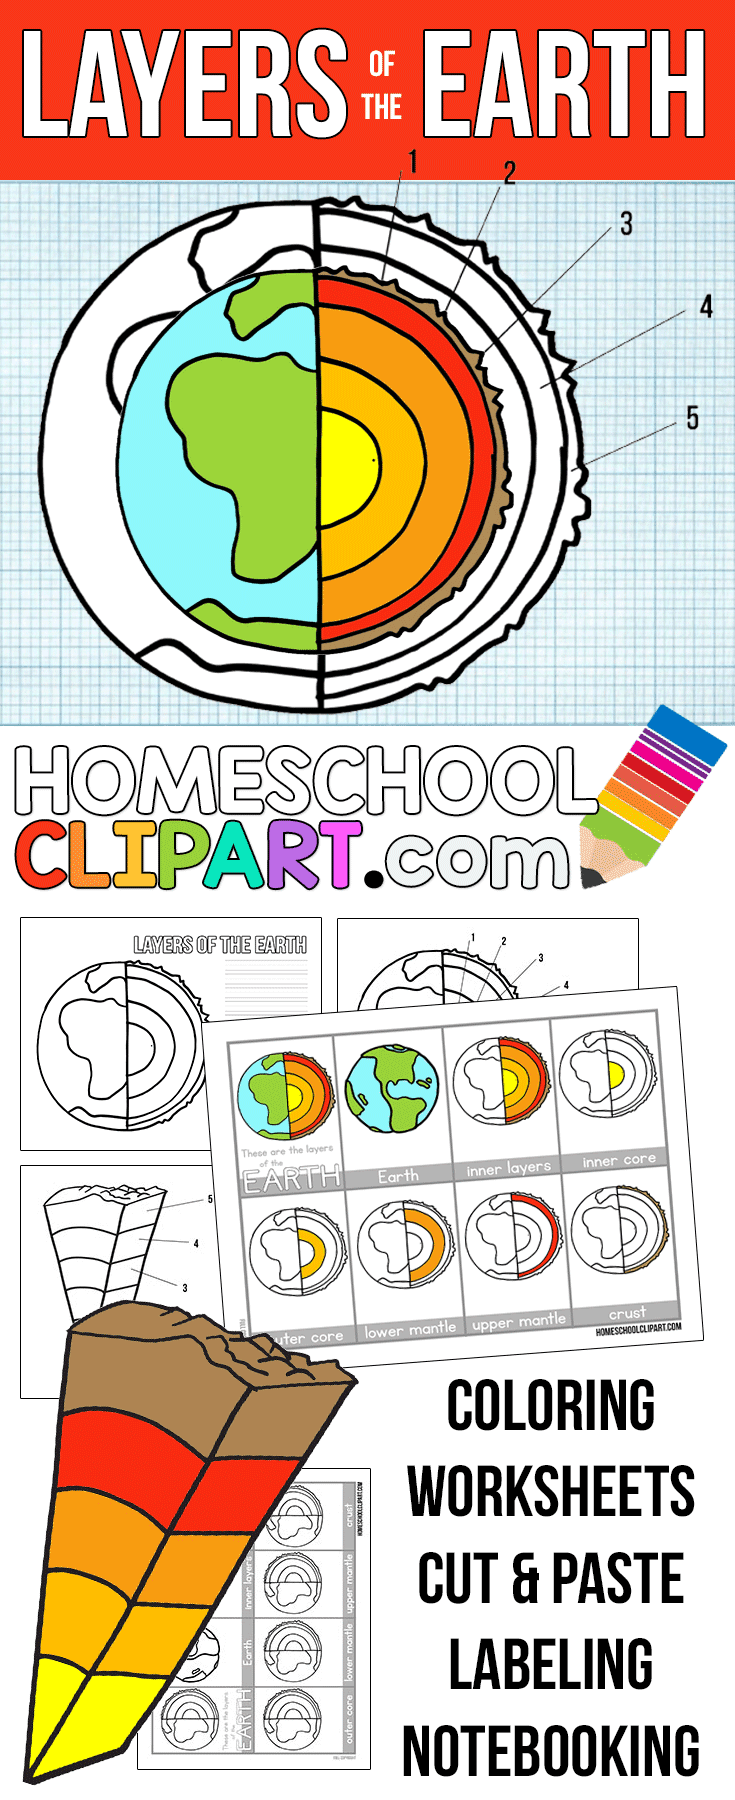 It is an image of Stupendous Earth Layers Worksheet Printable